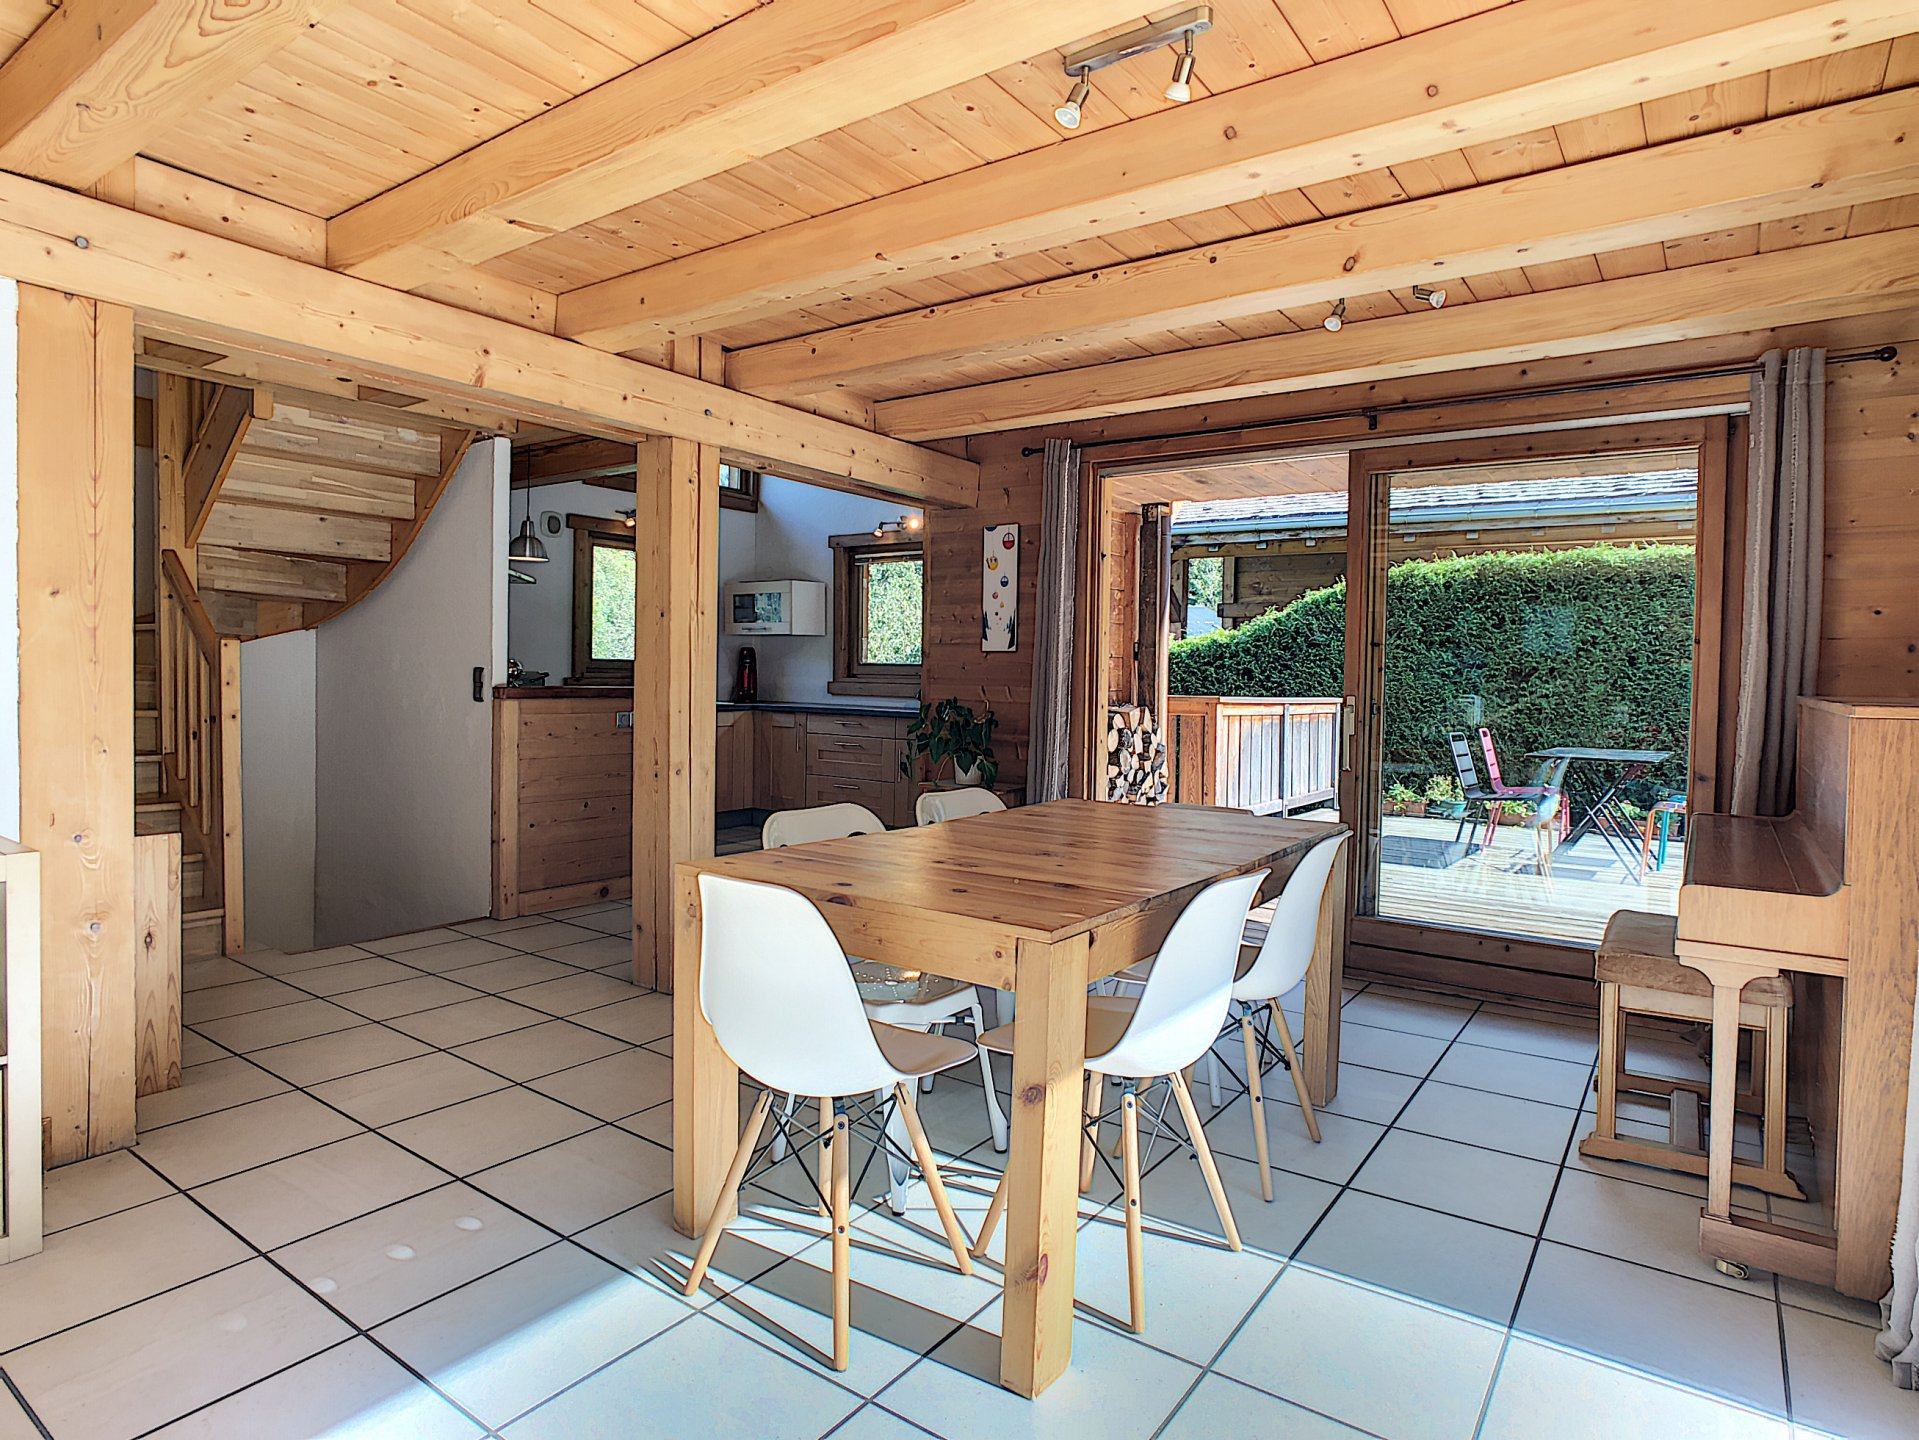 4 bedroom chalet with apartment, Les Houches